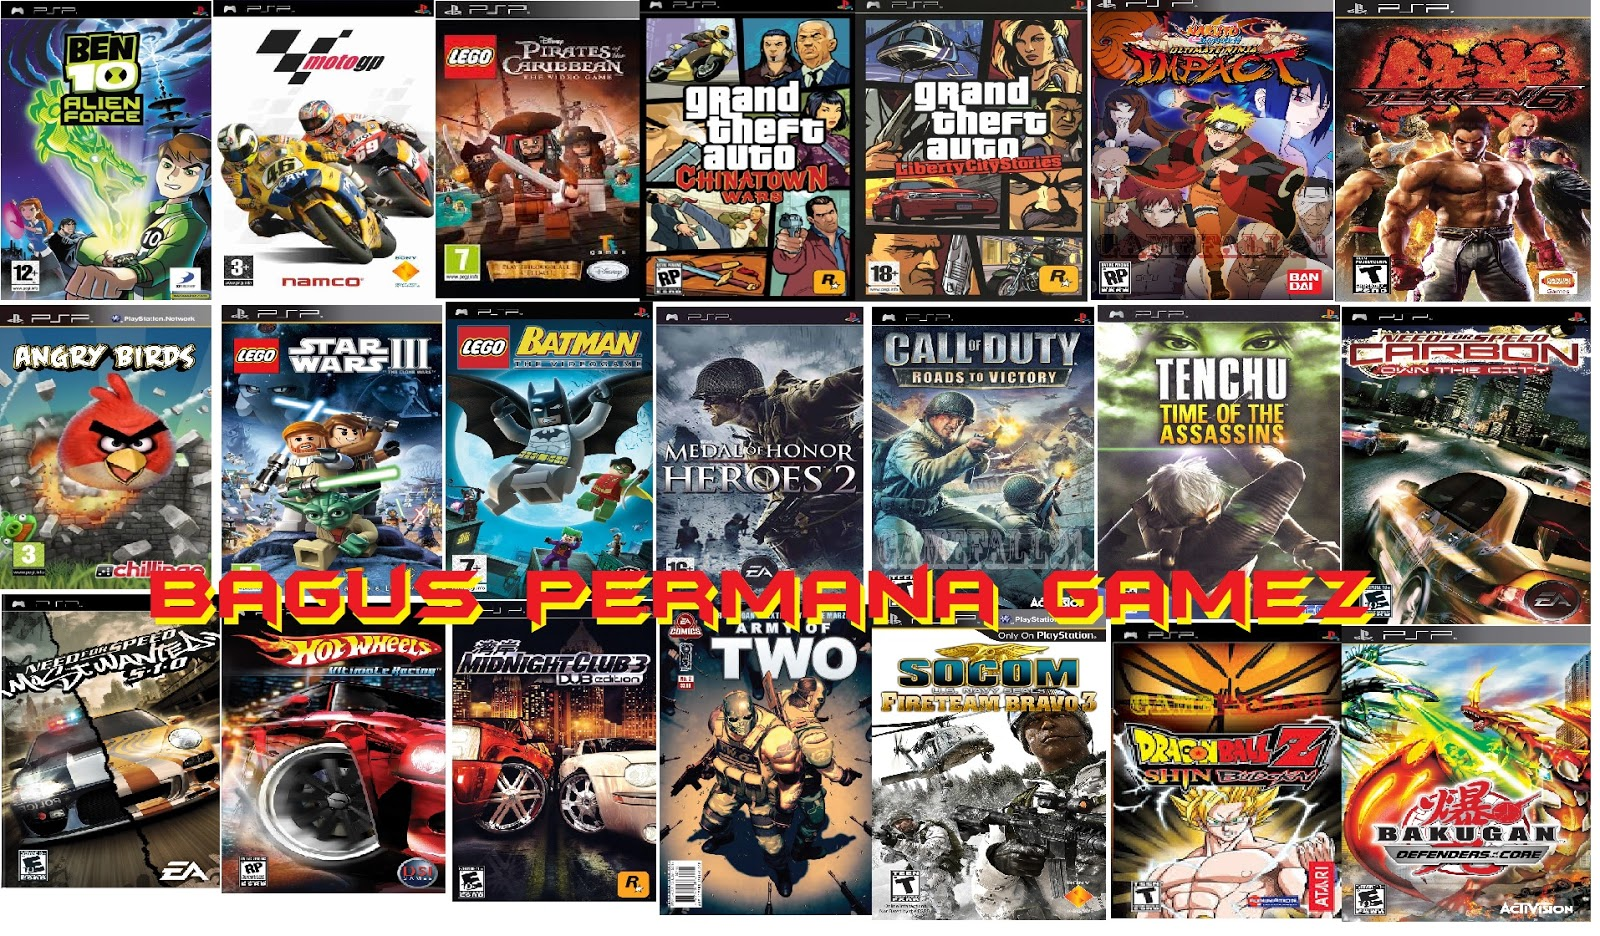 Jasa Isi Game Ps3 Cfw Ofw Ps4 Service Jual Beli Playstation Assesories